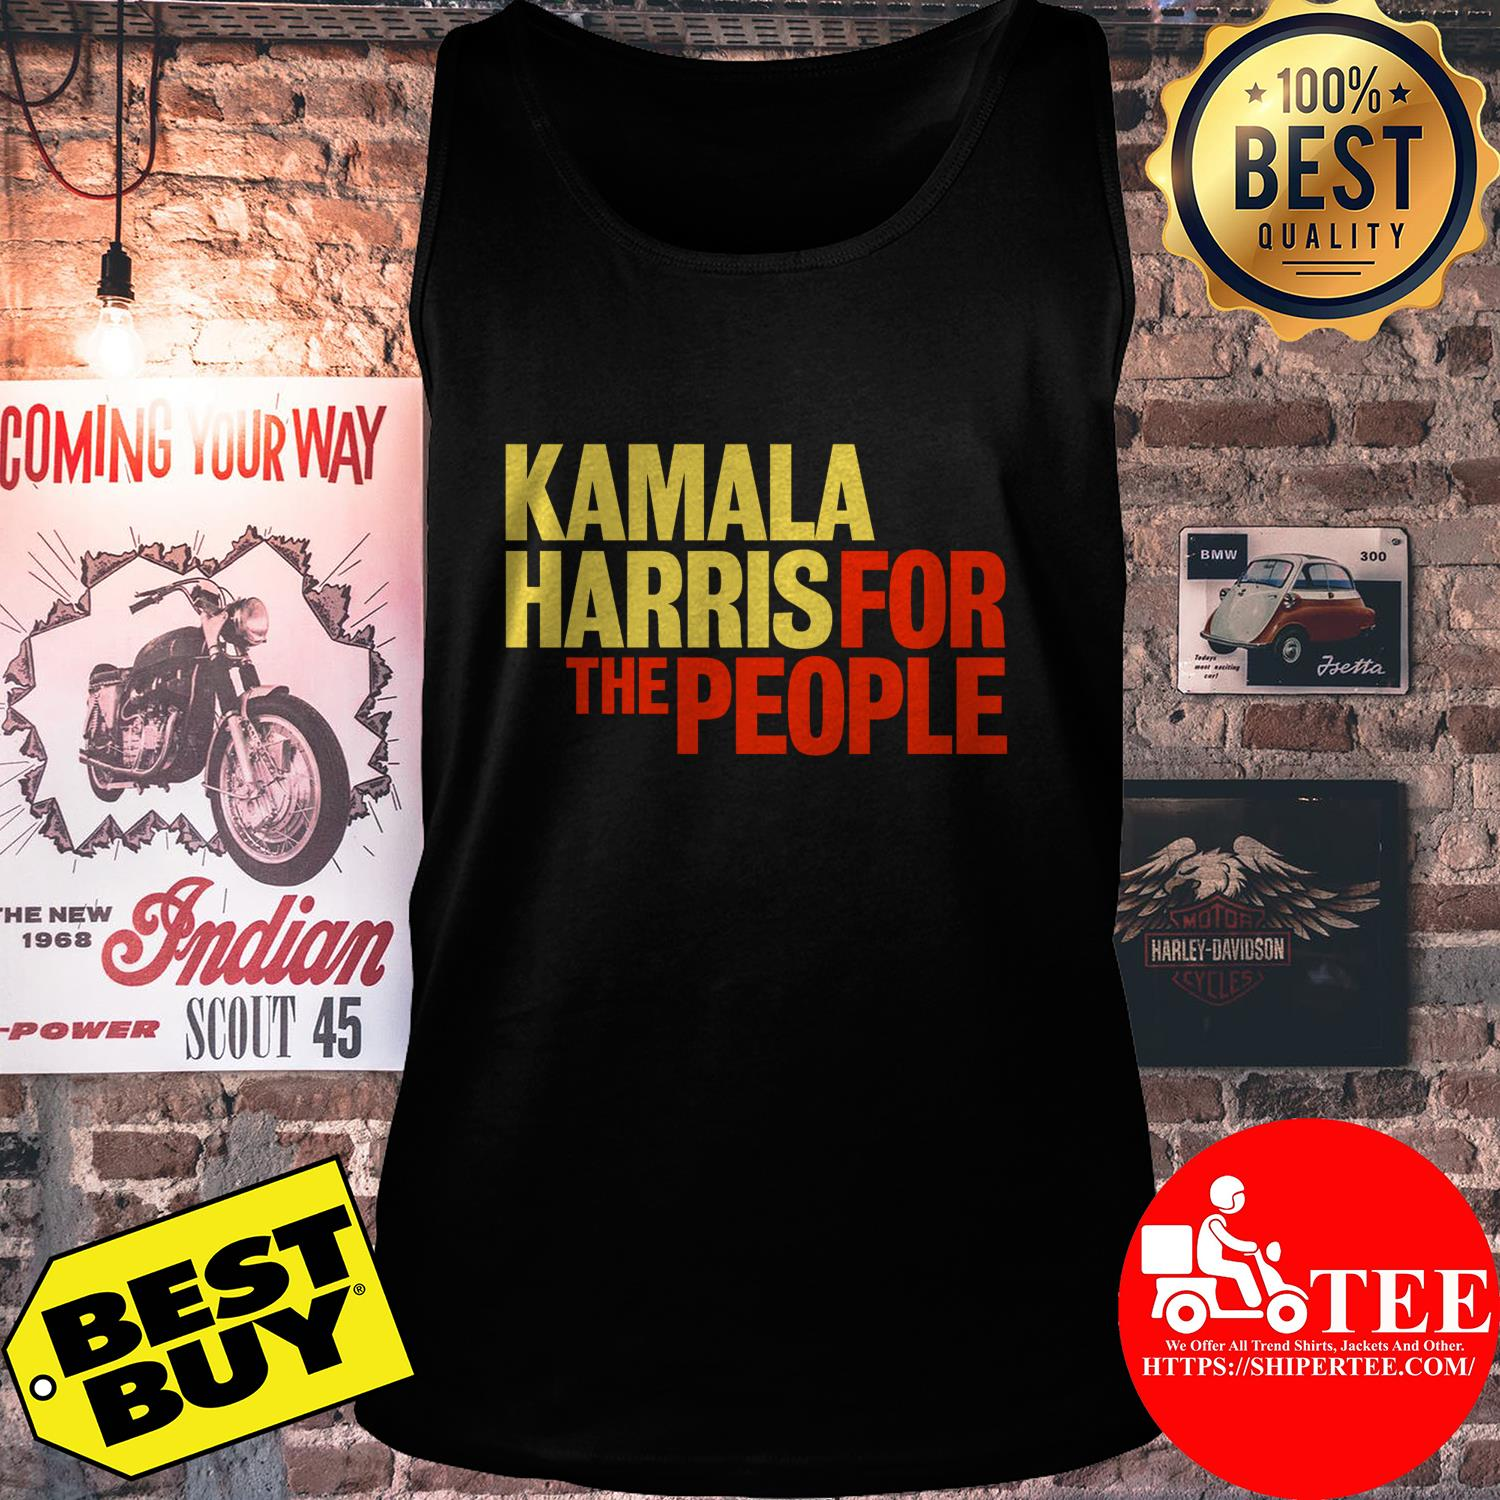 Kamala Harris for The People President 2020 Campaign tank top